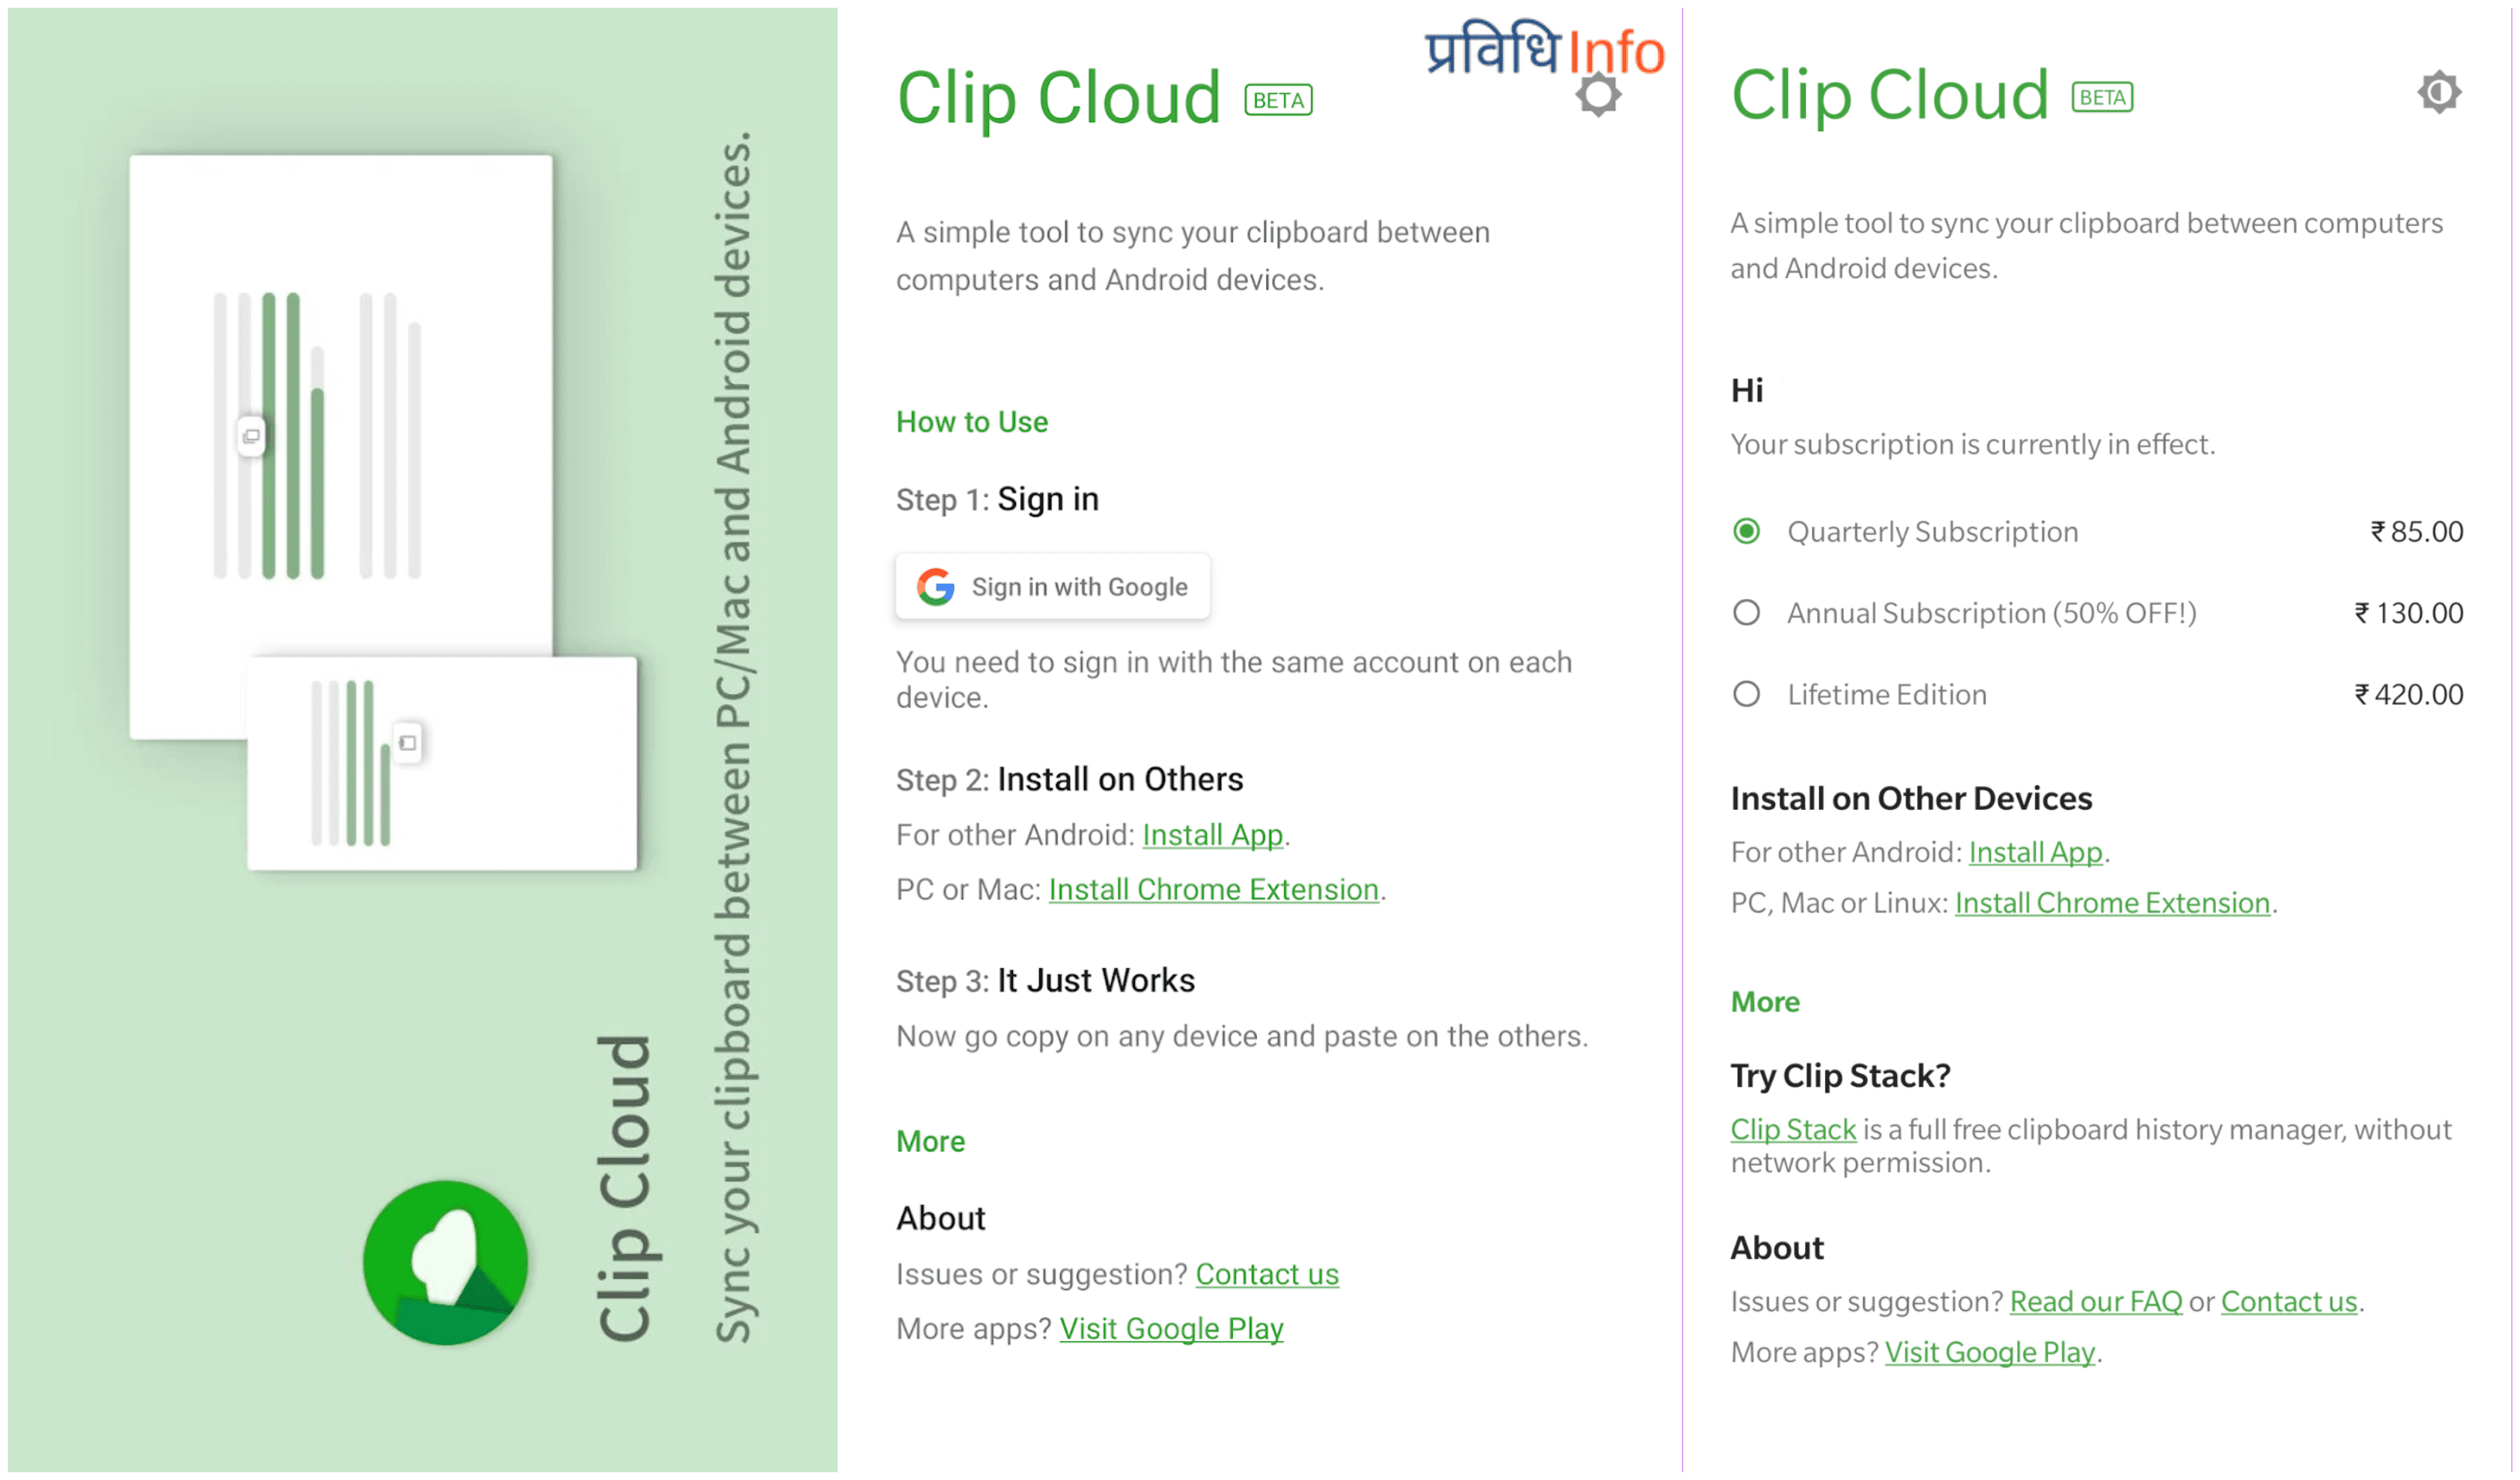 Clip Cloud - Top 10 Unique & Best Free Android Apps – February 2019